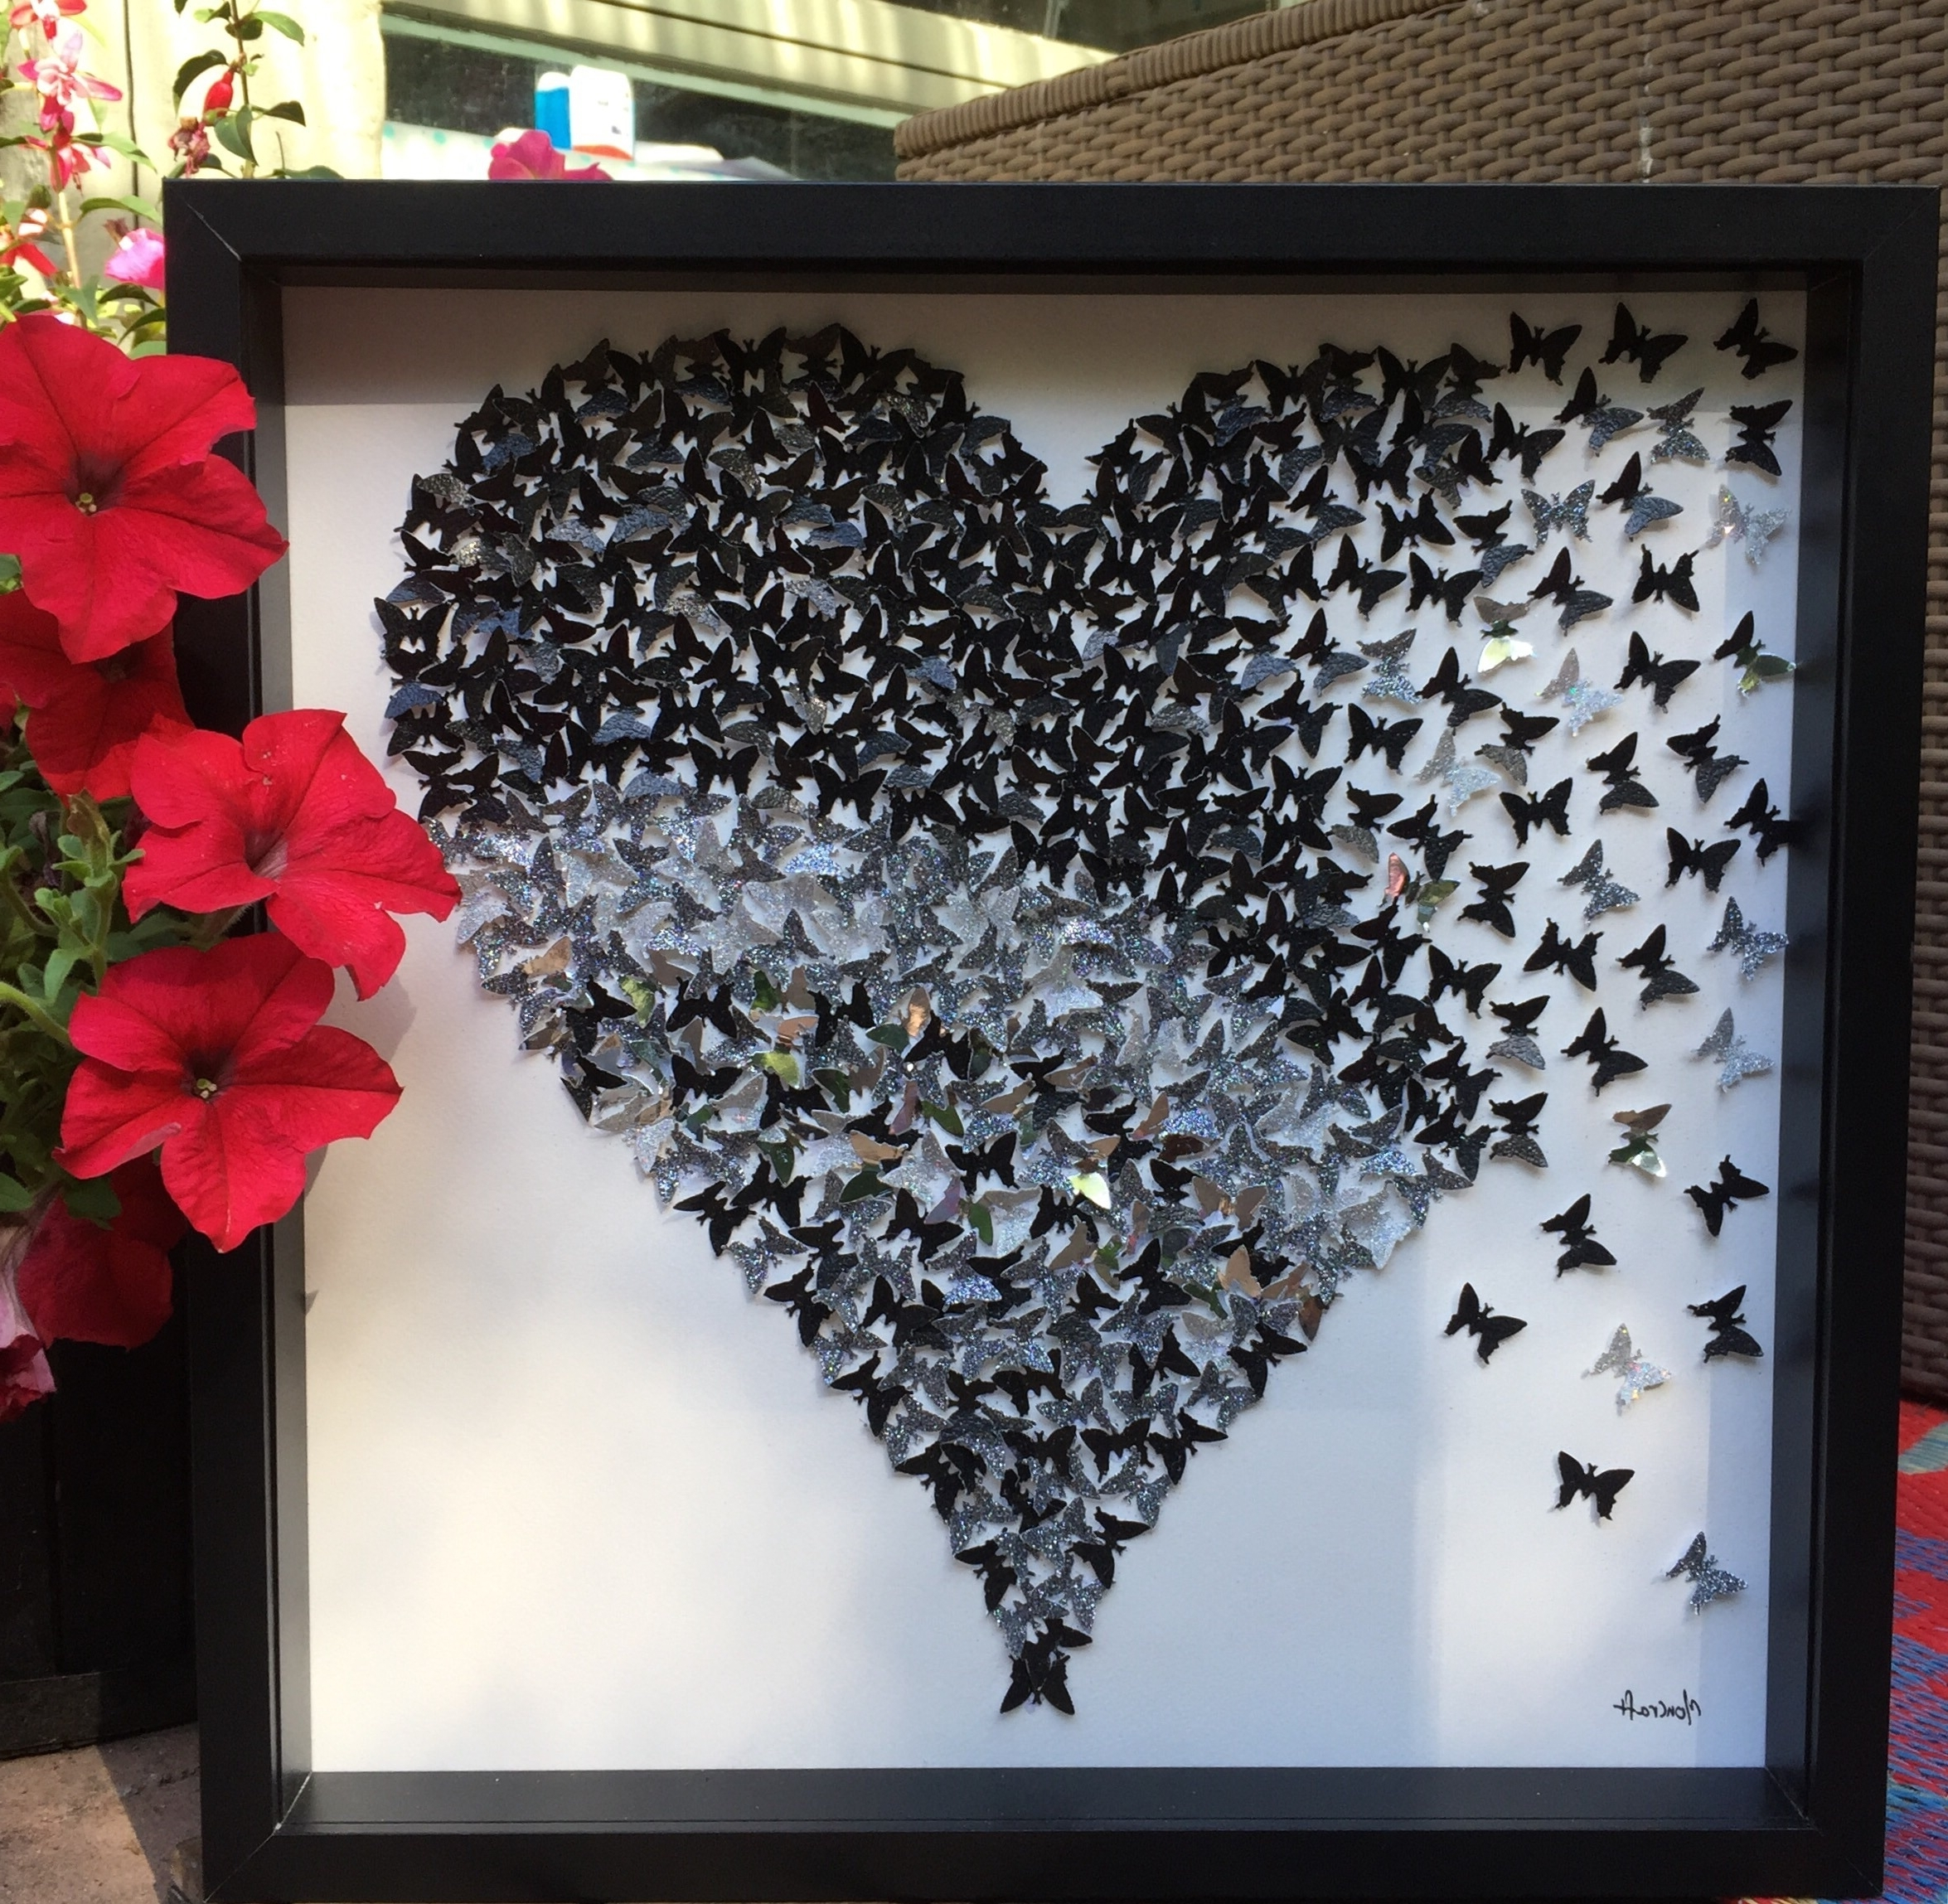 Current The Product 3D Sparkly Black Silver Heart , Paper Heart Frame Hand Pertaining To 3D Butterfly Framed Wall Art (View 8 of 15)